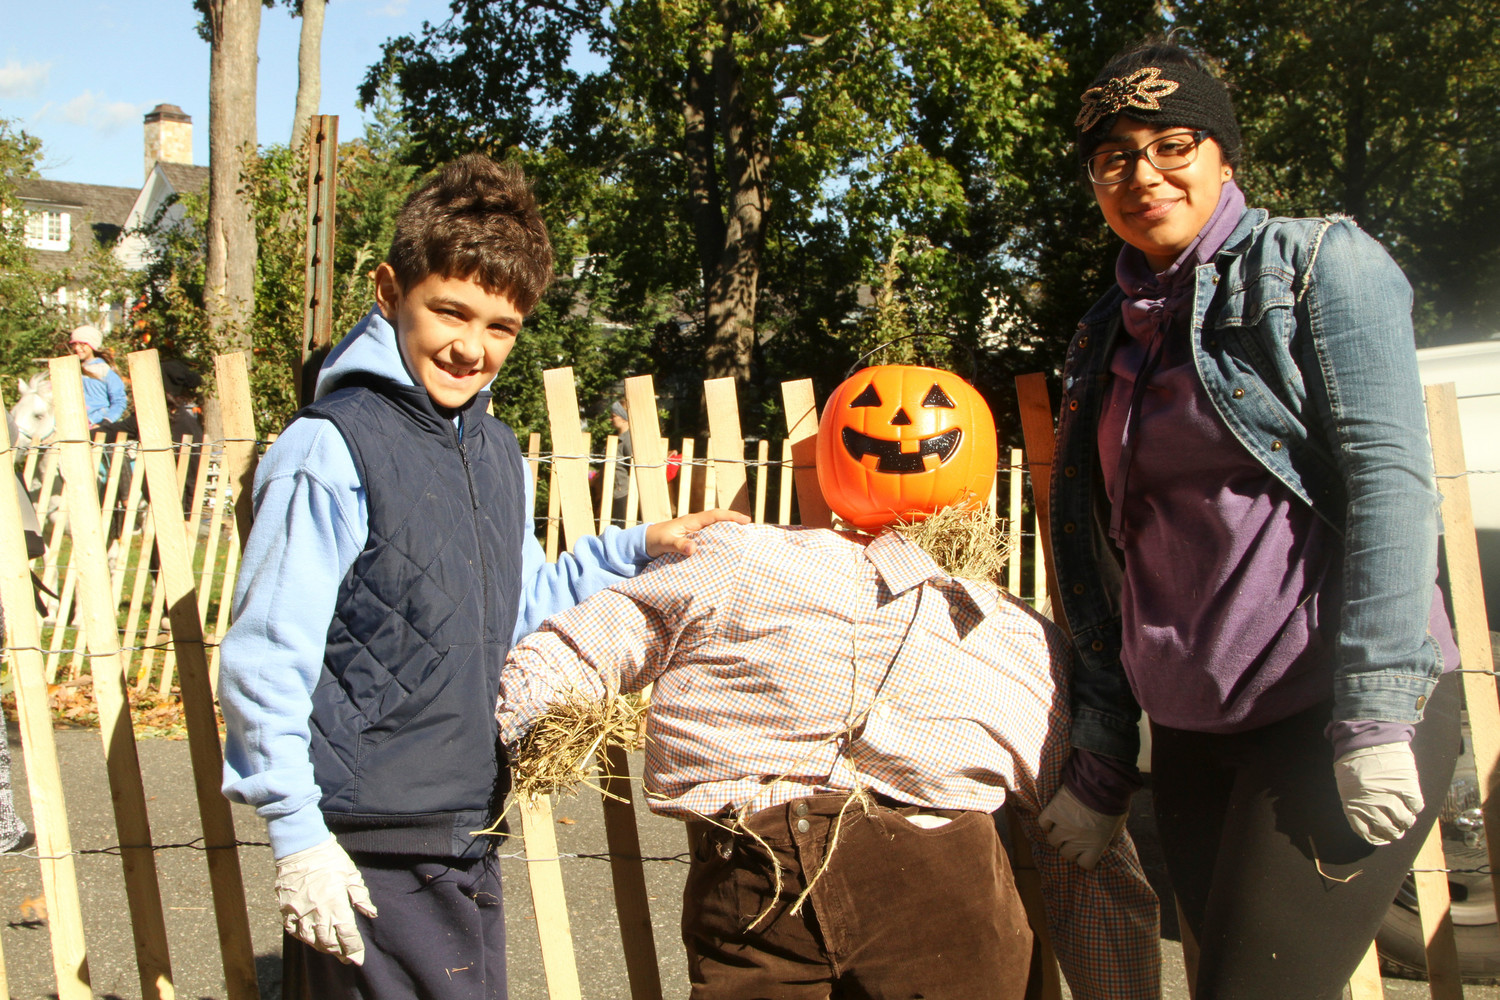 Alex Nieves and Astrid Menjibar collaborated on putting together a scarecrow at last year's fair.